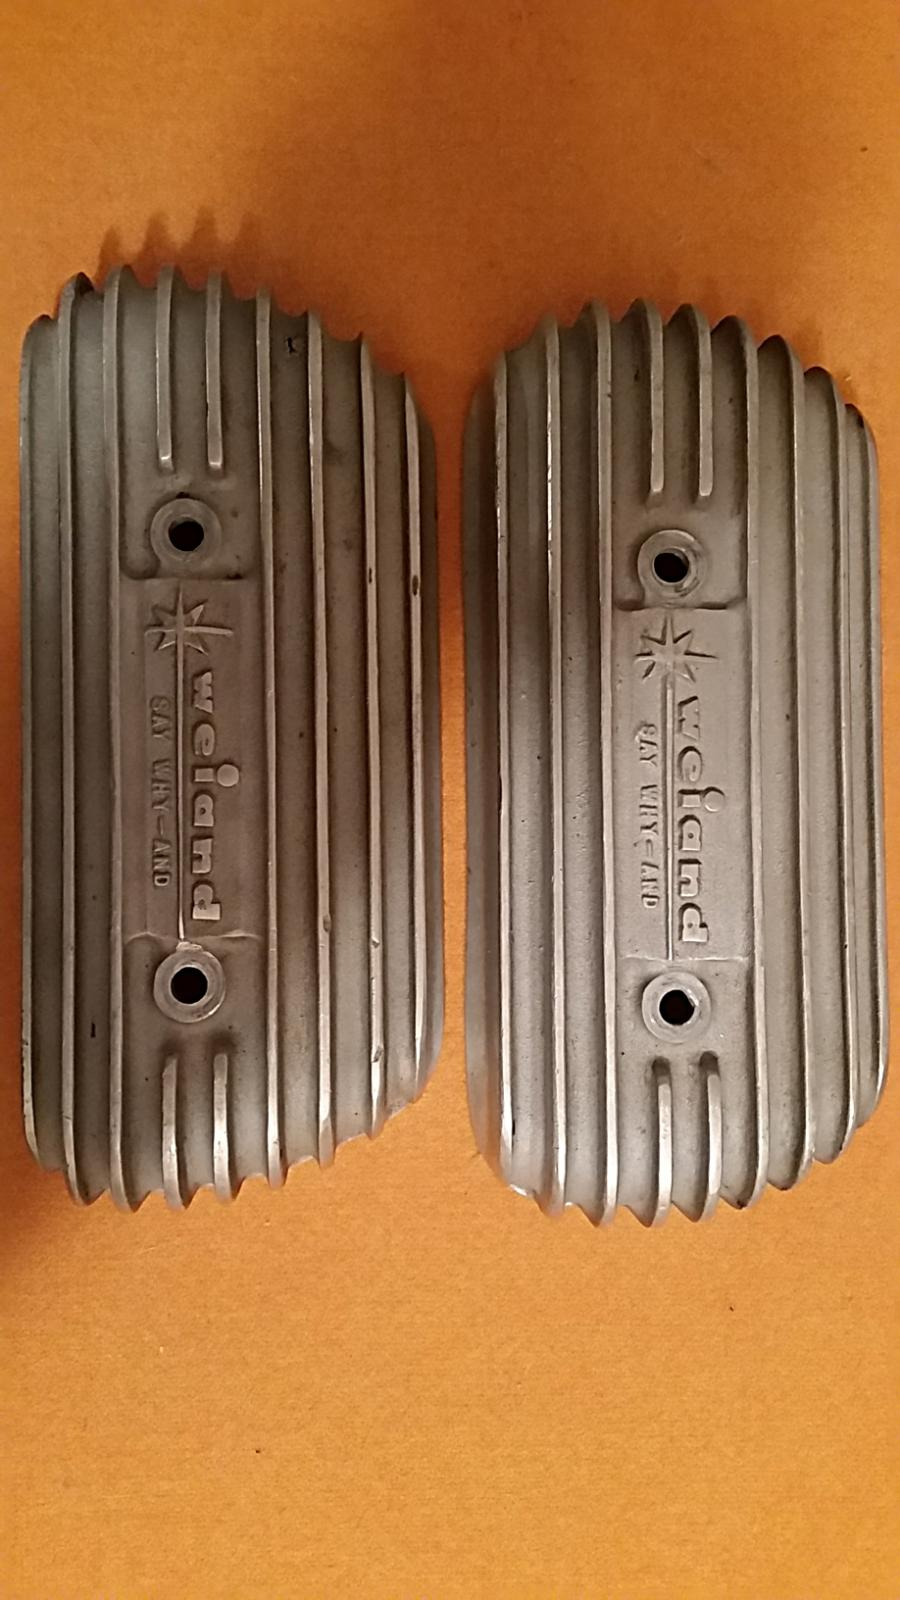 My Weiand valve covers